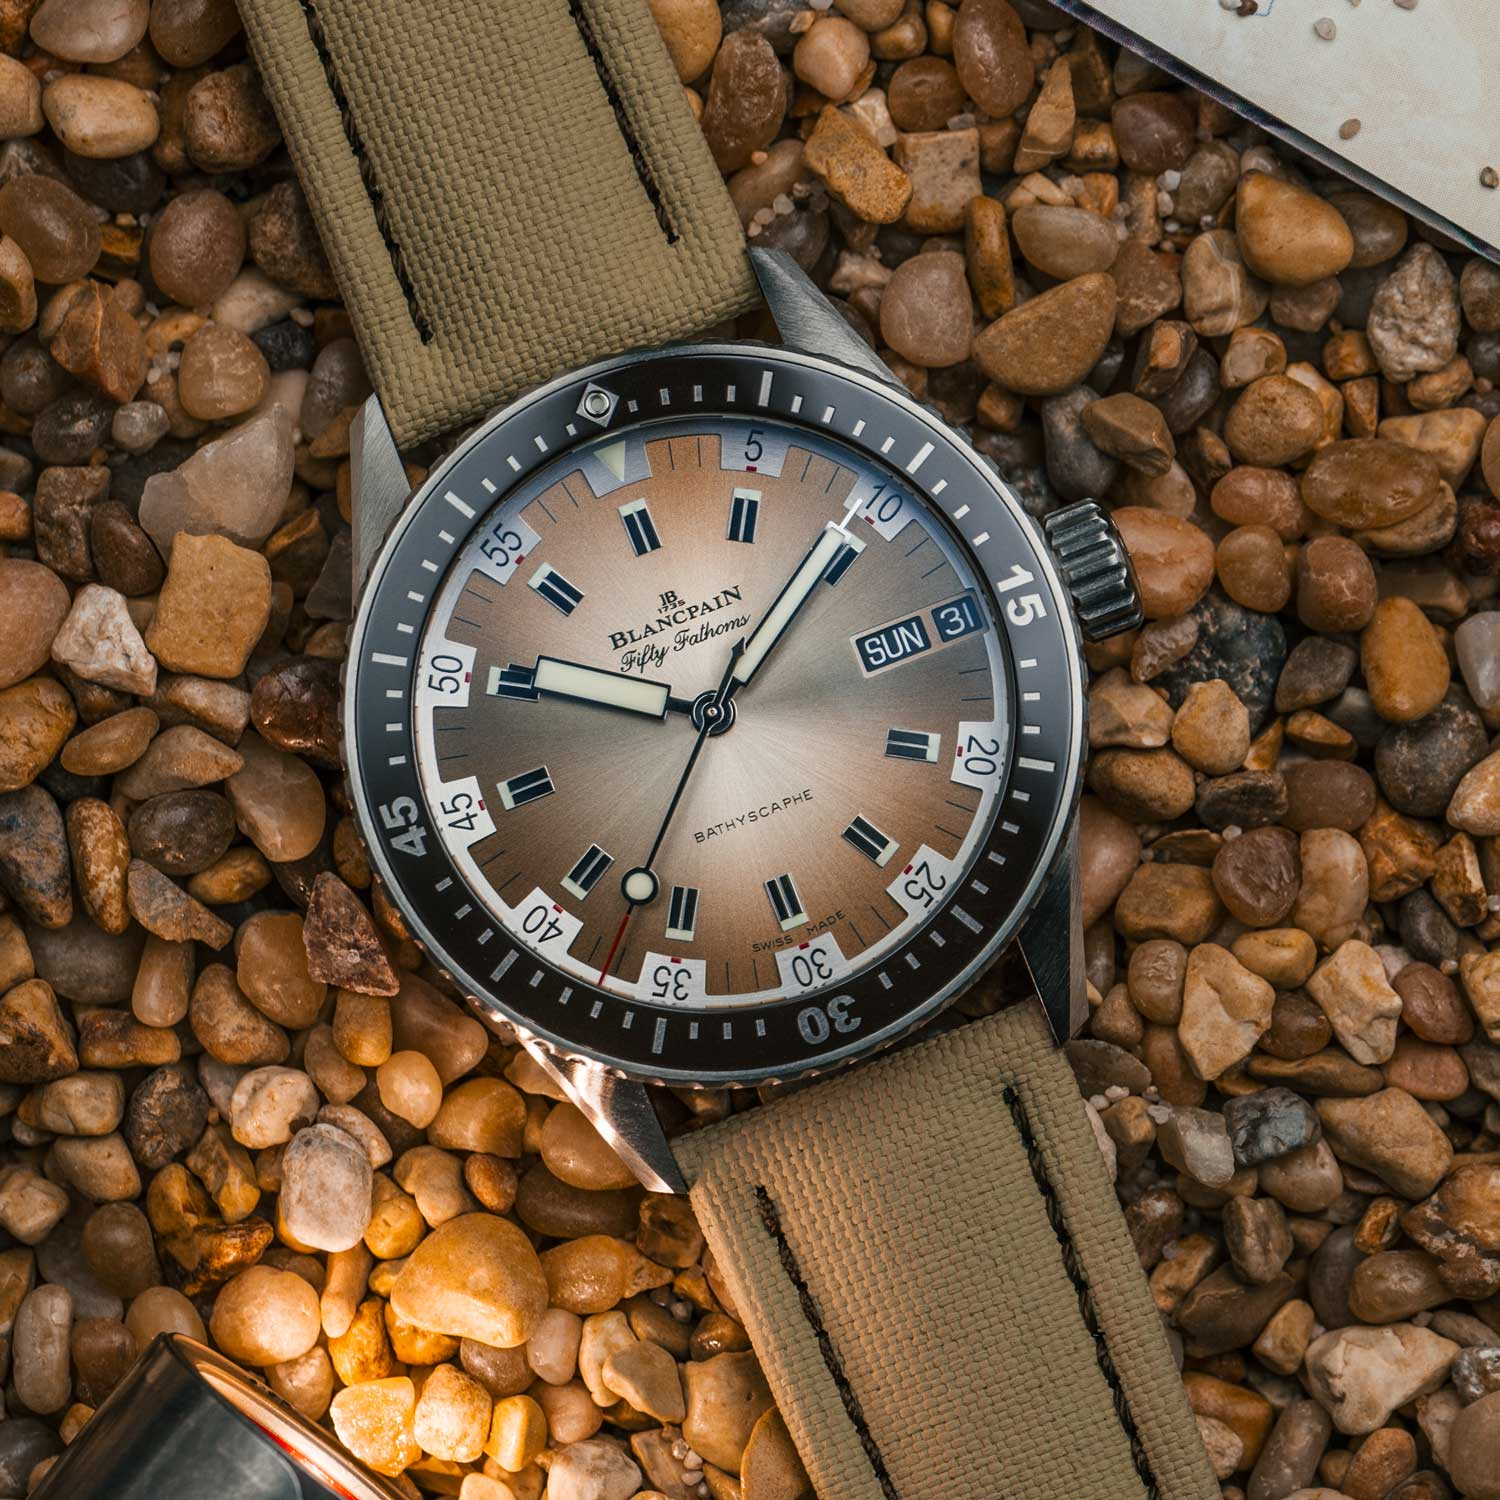 The Fifty Fathoms Bathyscaphe Day Date Desert Edition